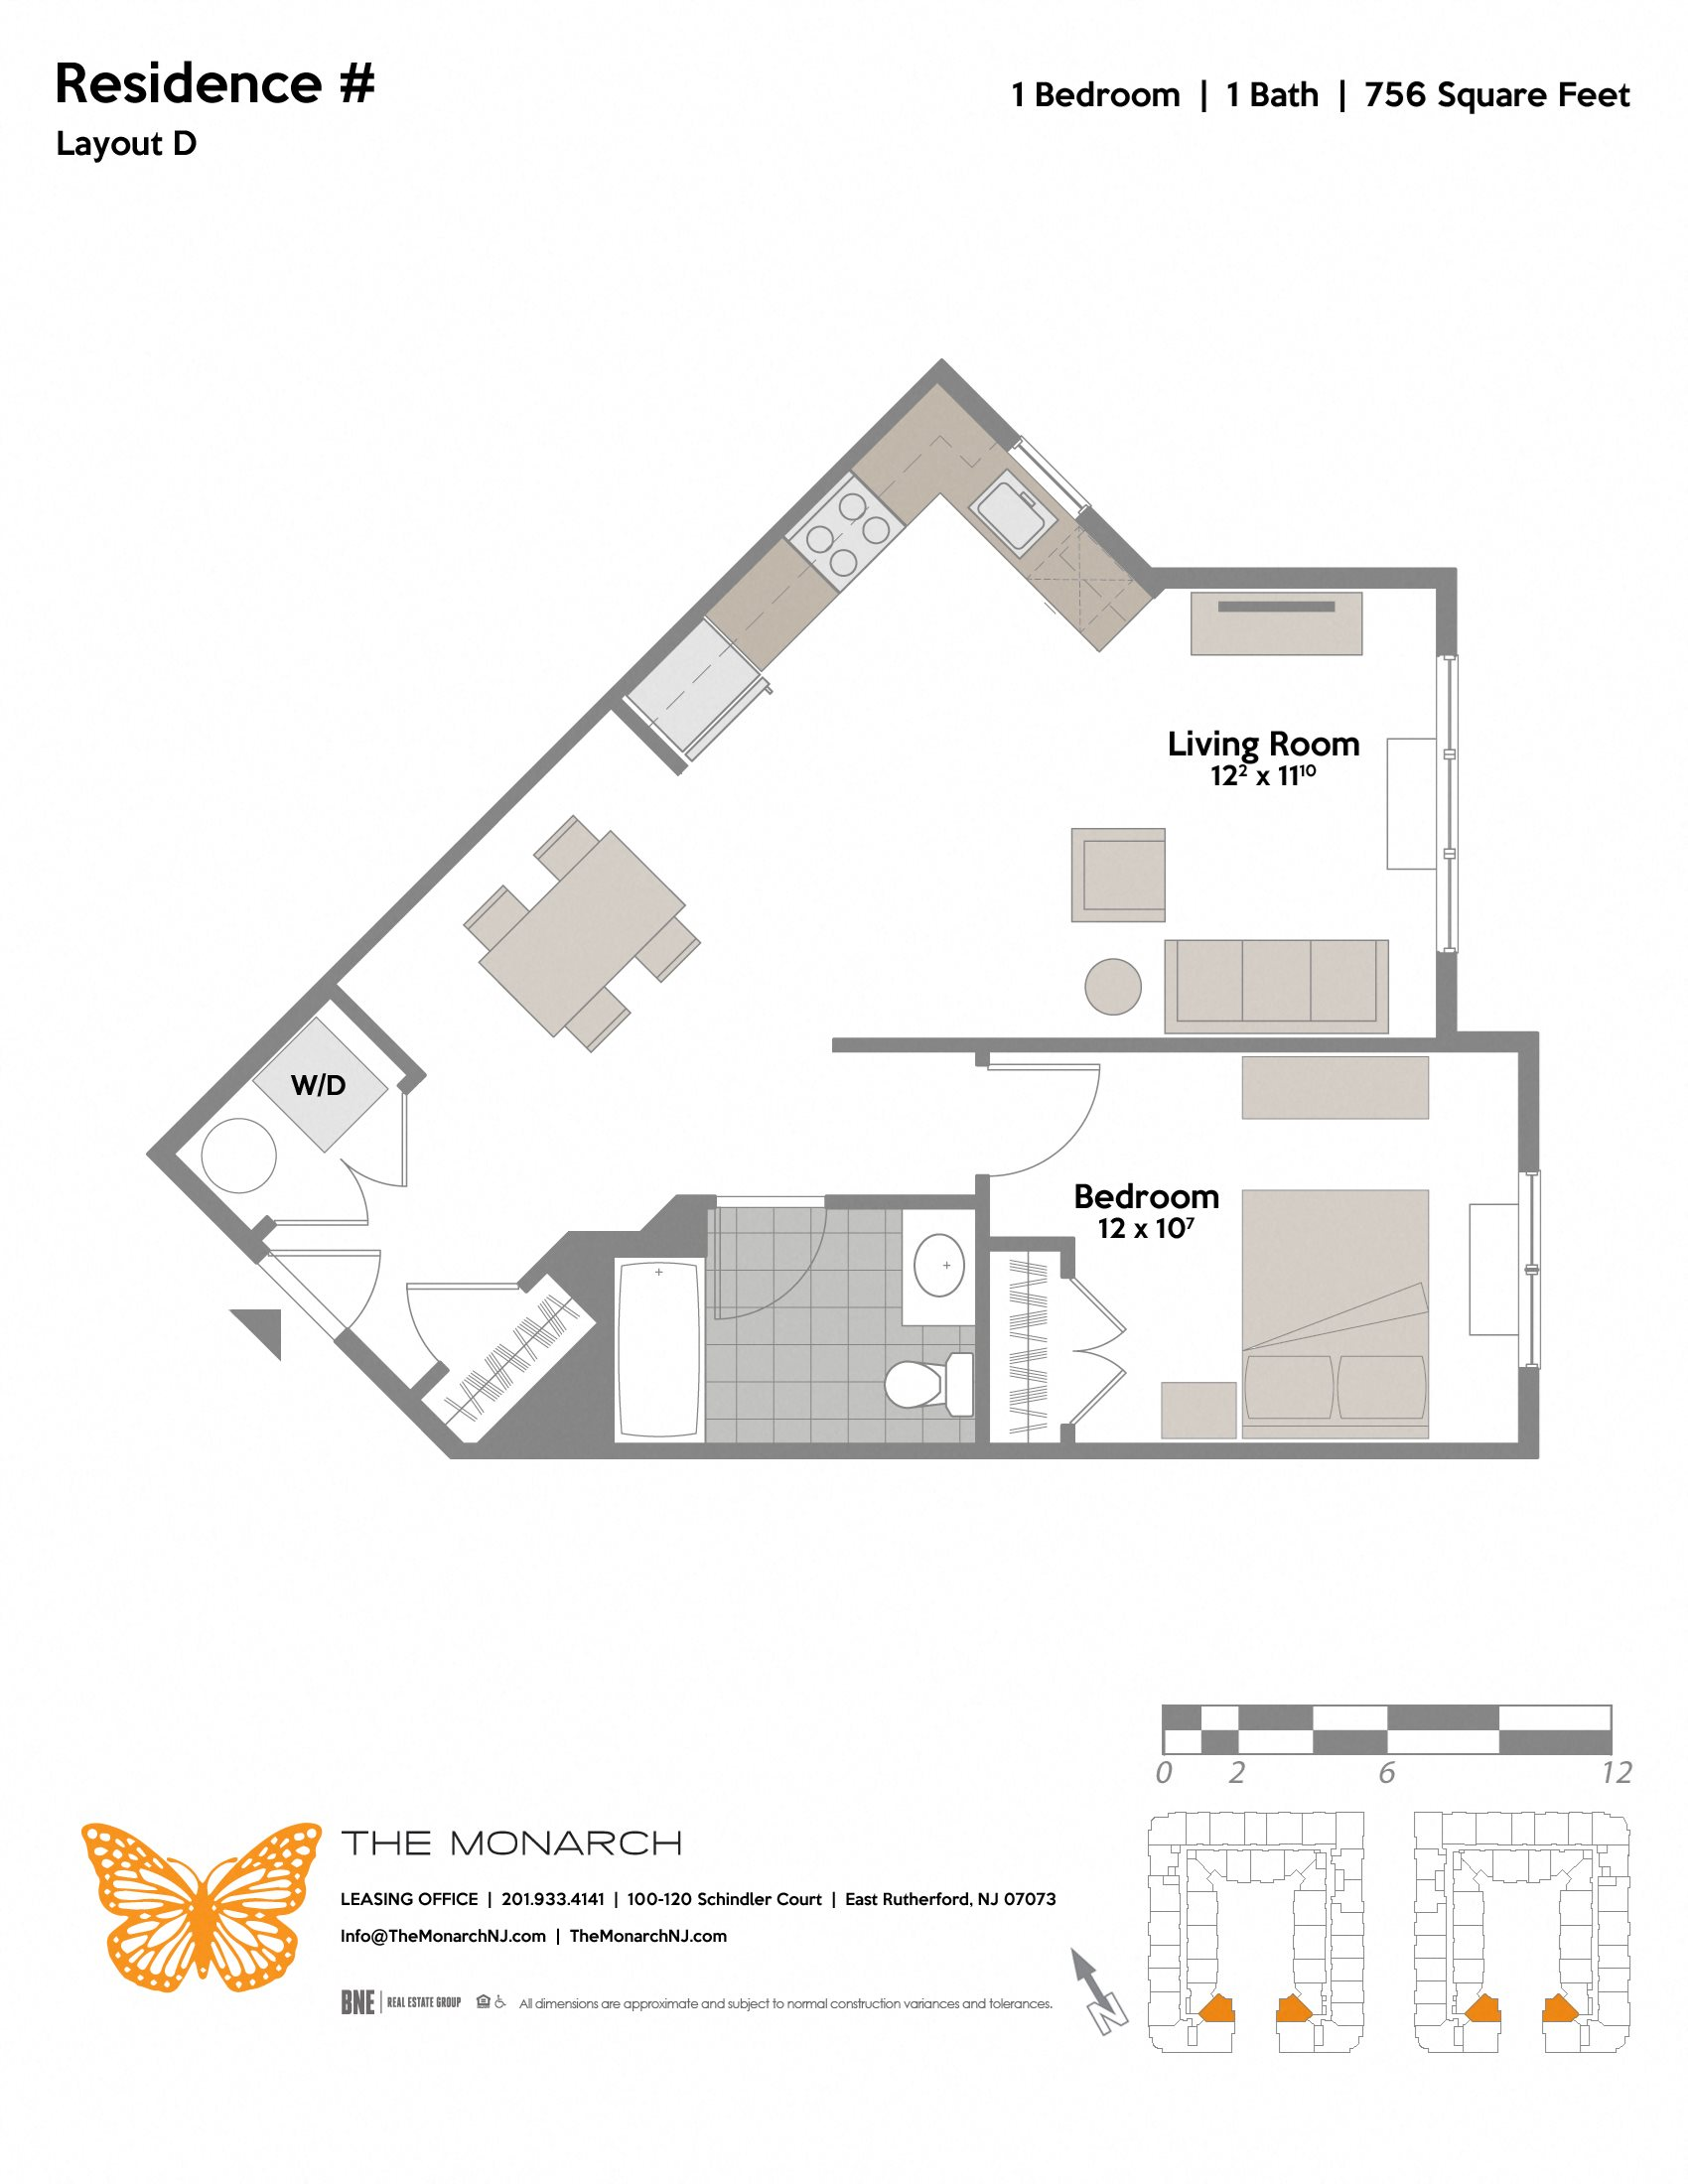 Layout D Floor Plan 1